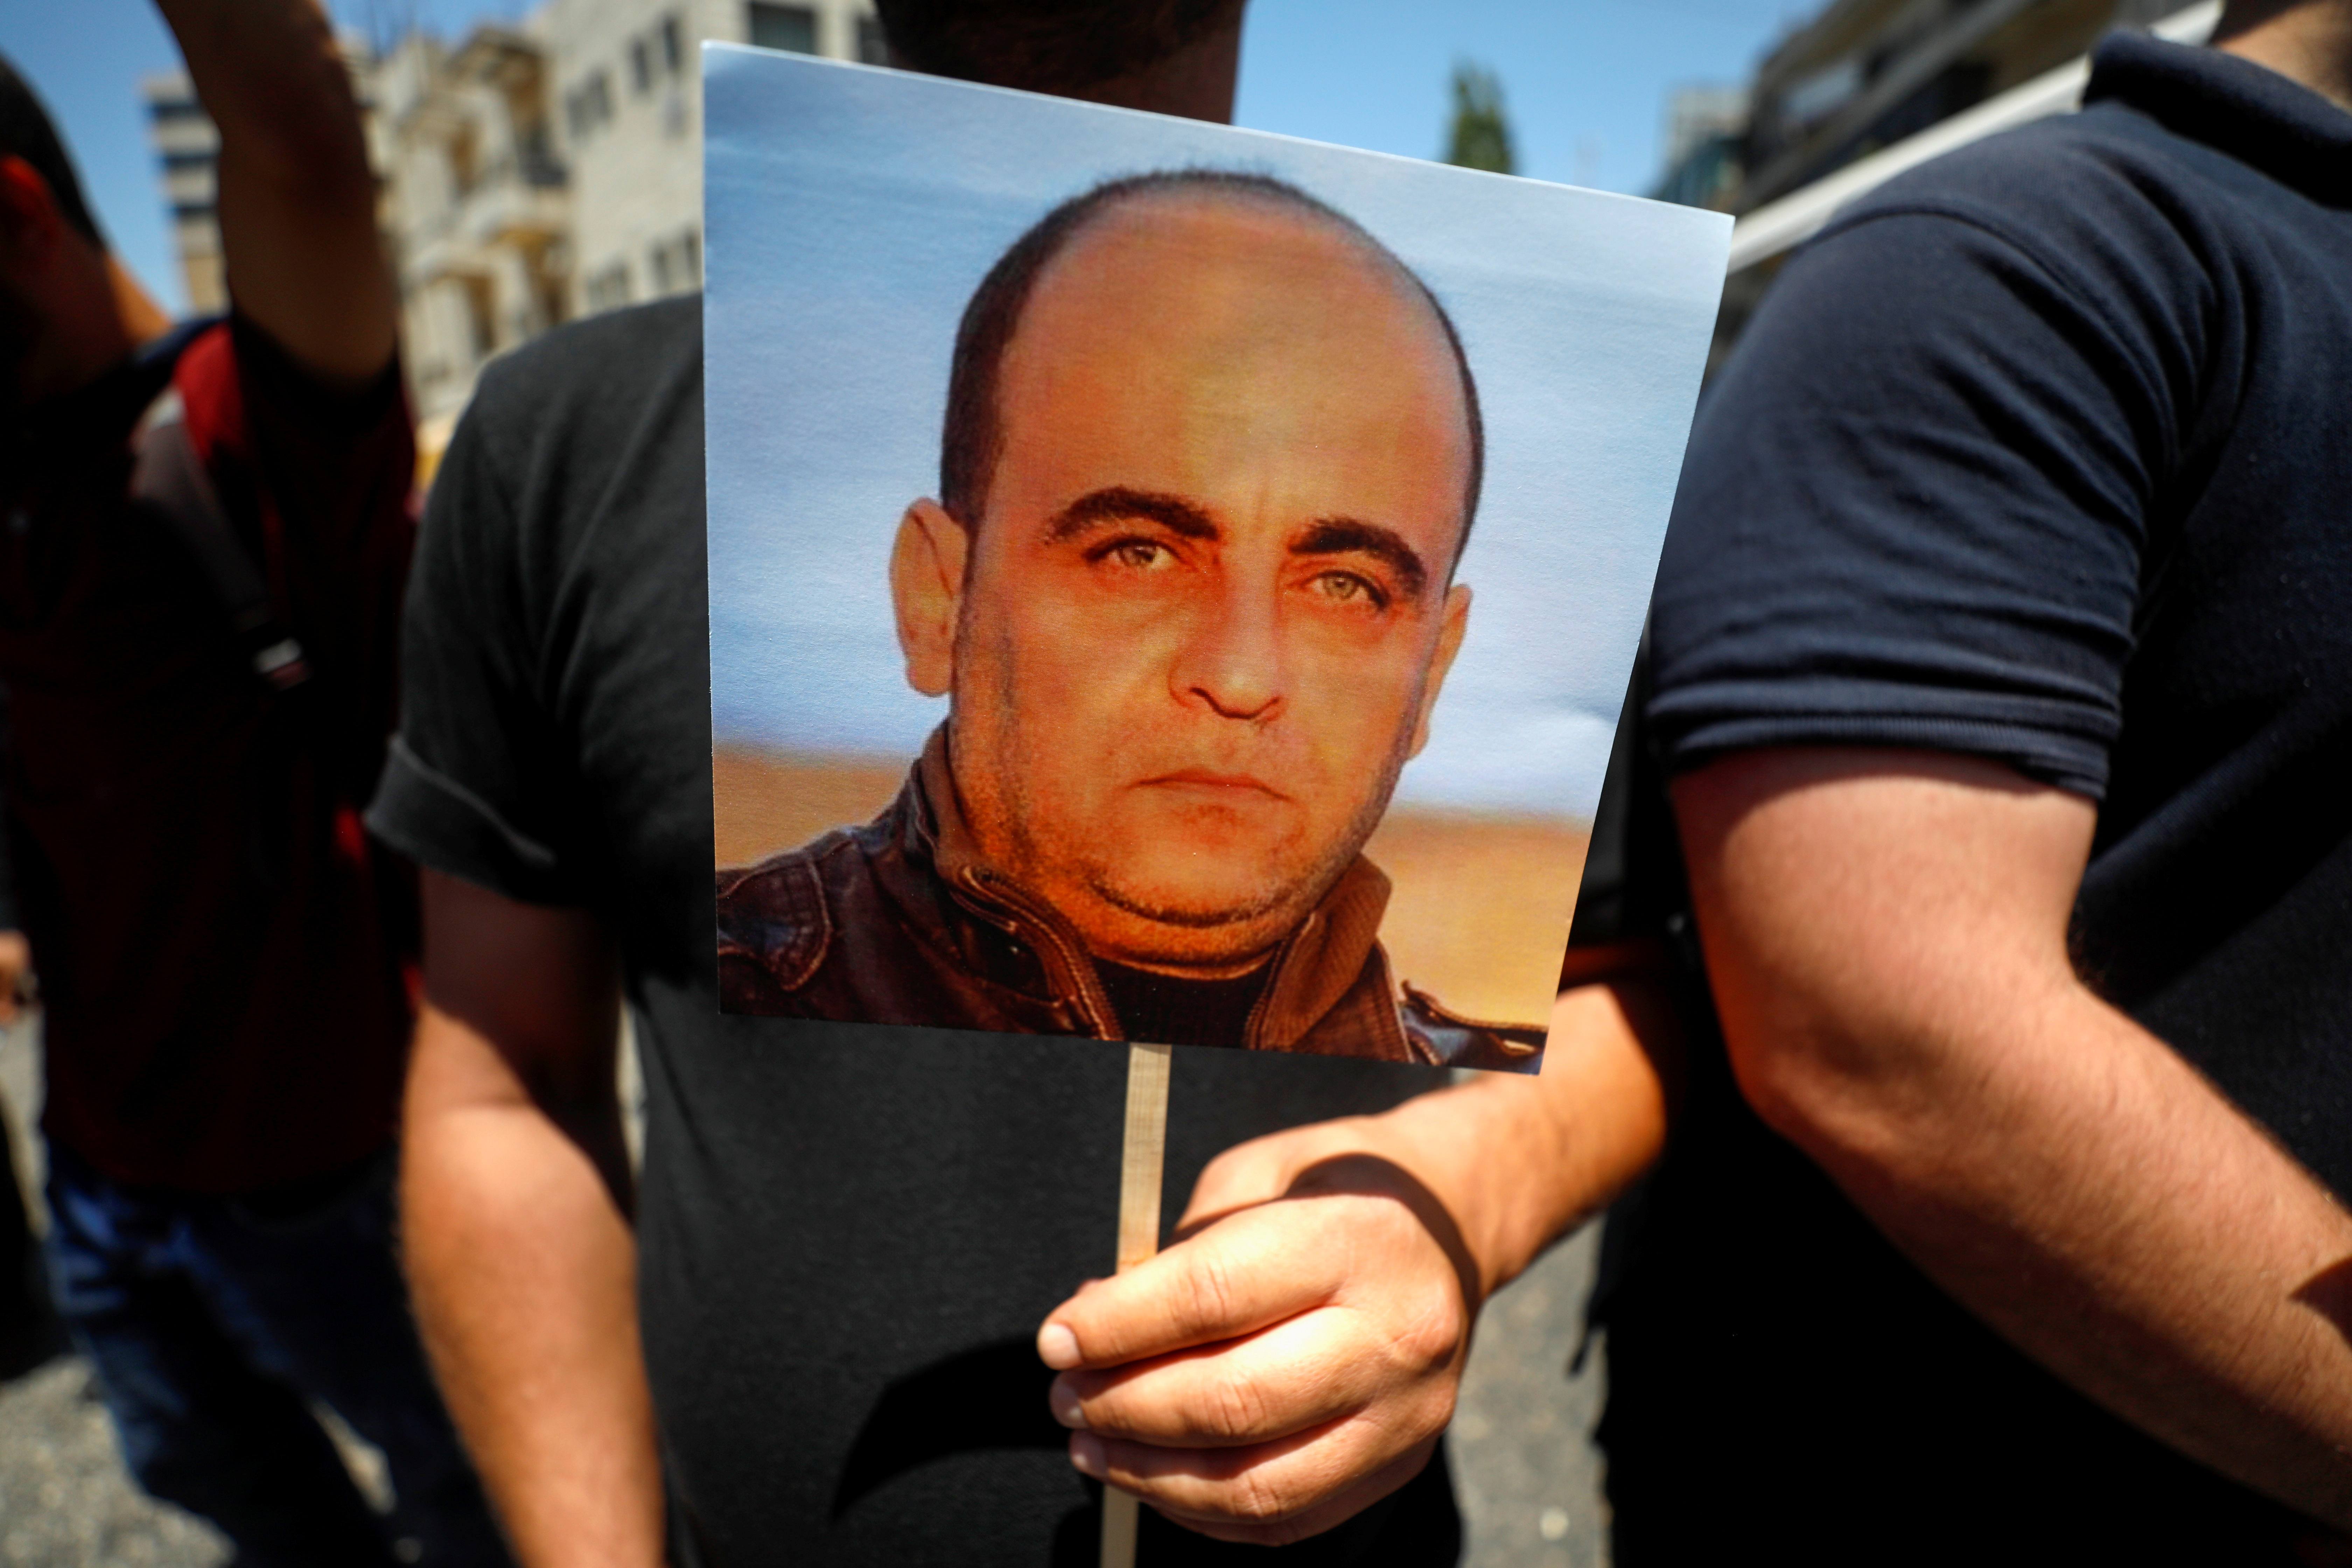 A demonstrator holds a picture of Nizar Banat, a Palestinian parliamentary candidate who criticised the Palestinian Authority and died after being arrested by PA security forces, during a protest in Ramallah in the Israeli-occupied West Bank, June 24, 2021. REUTERS/Mohamad Torokman